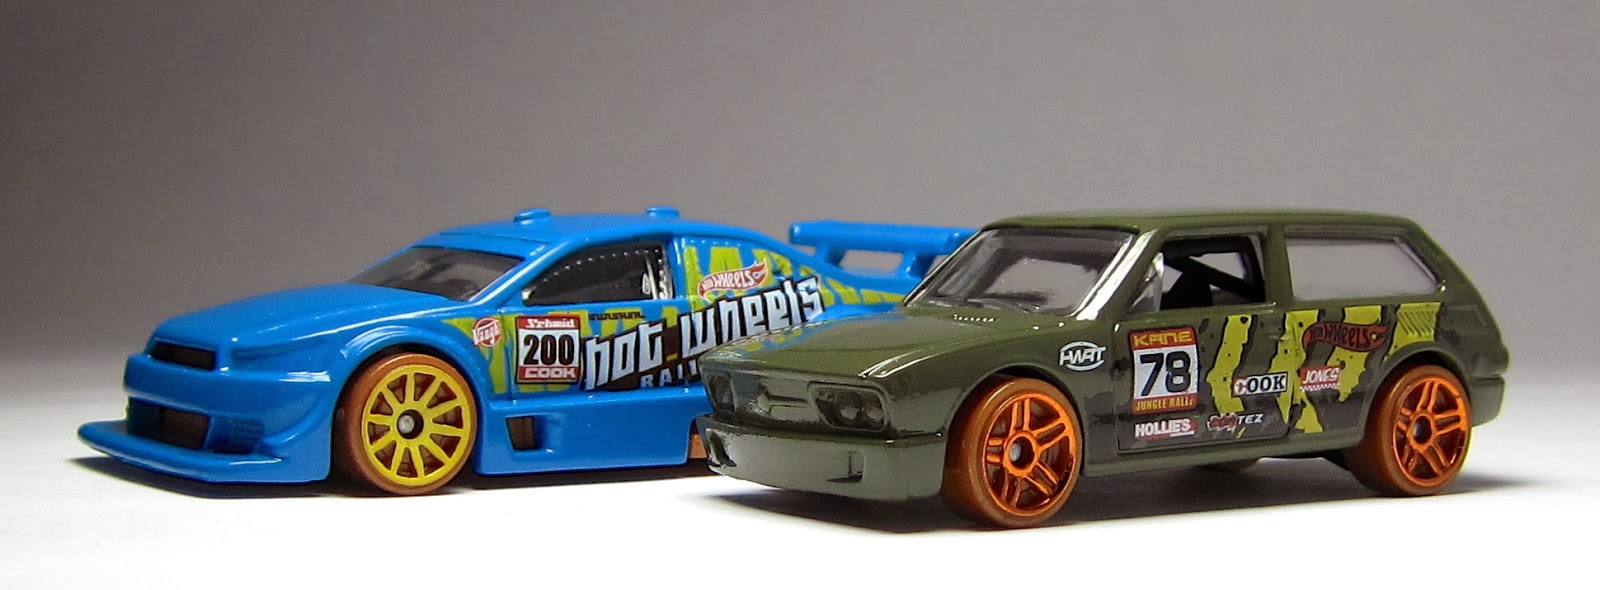 Hot Wheels Volkswagen Rare Car Hotwheels Vw Drag Bus Mnm First Look 2014 Brasilia And The Rest Of